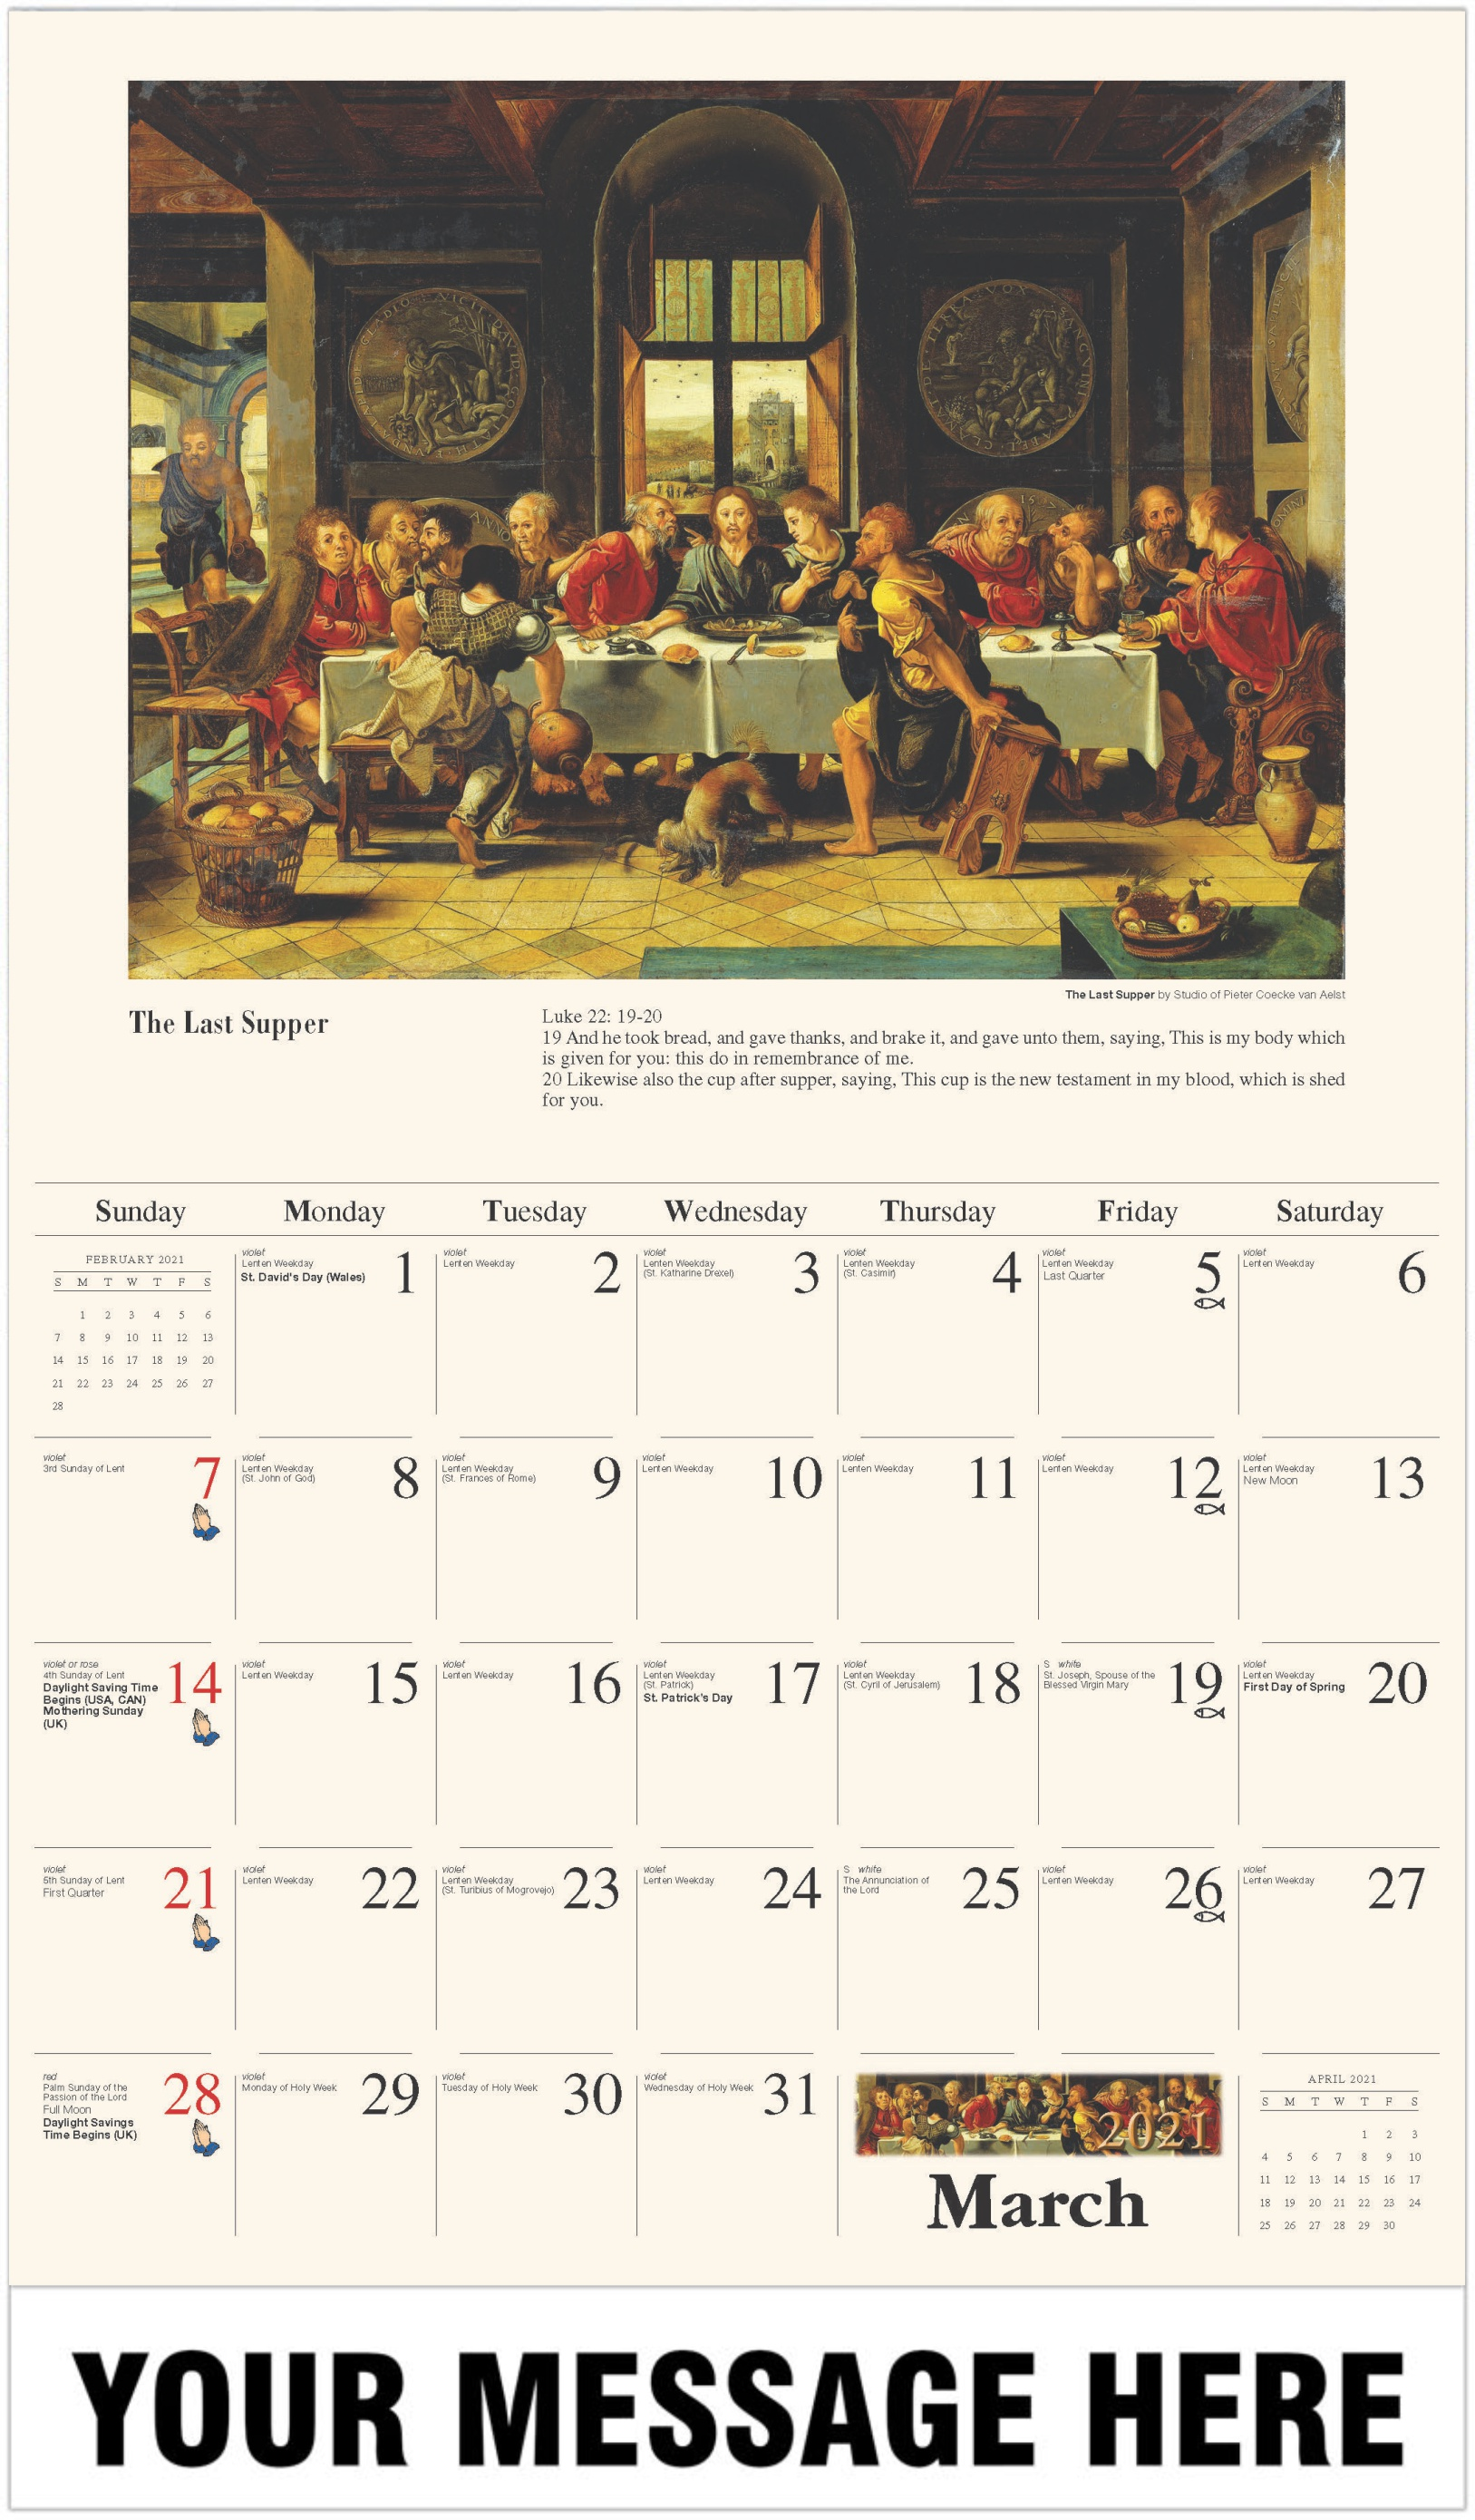 The Last Supper - March - Catholic Inspiration 2021 Promotional Calendar